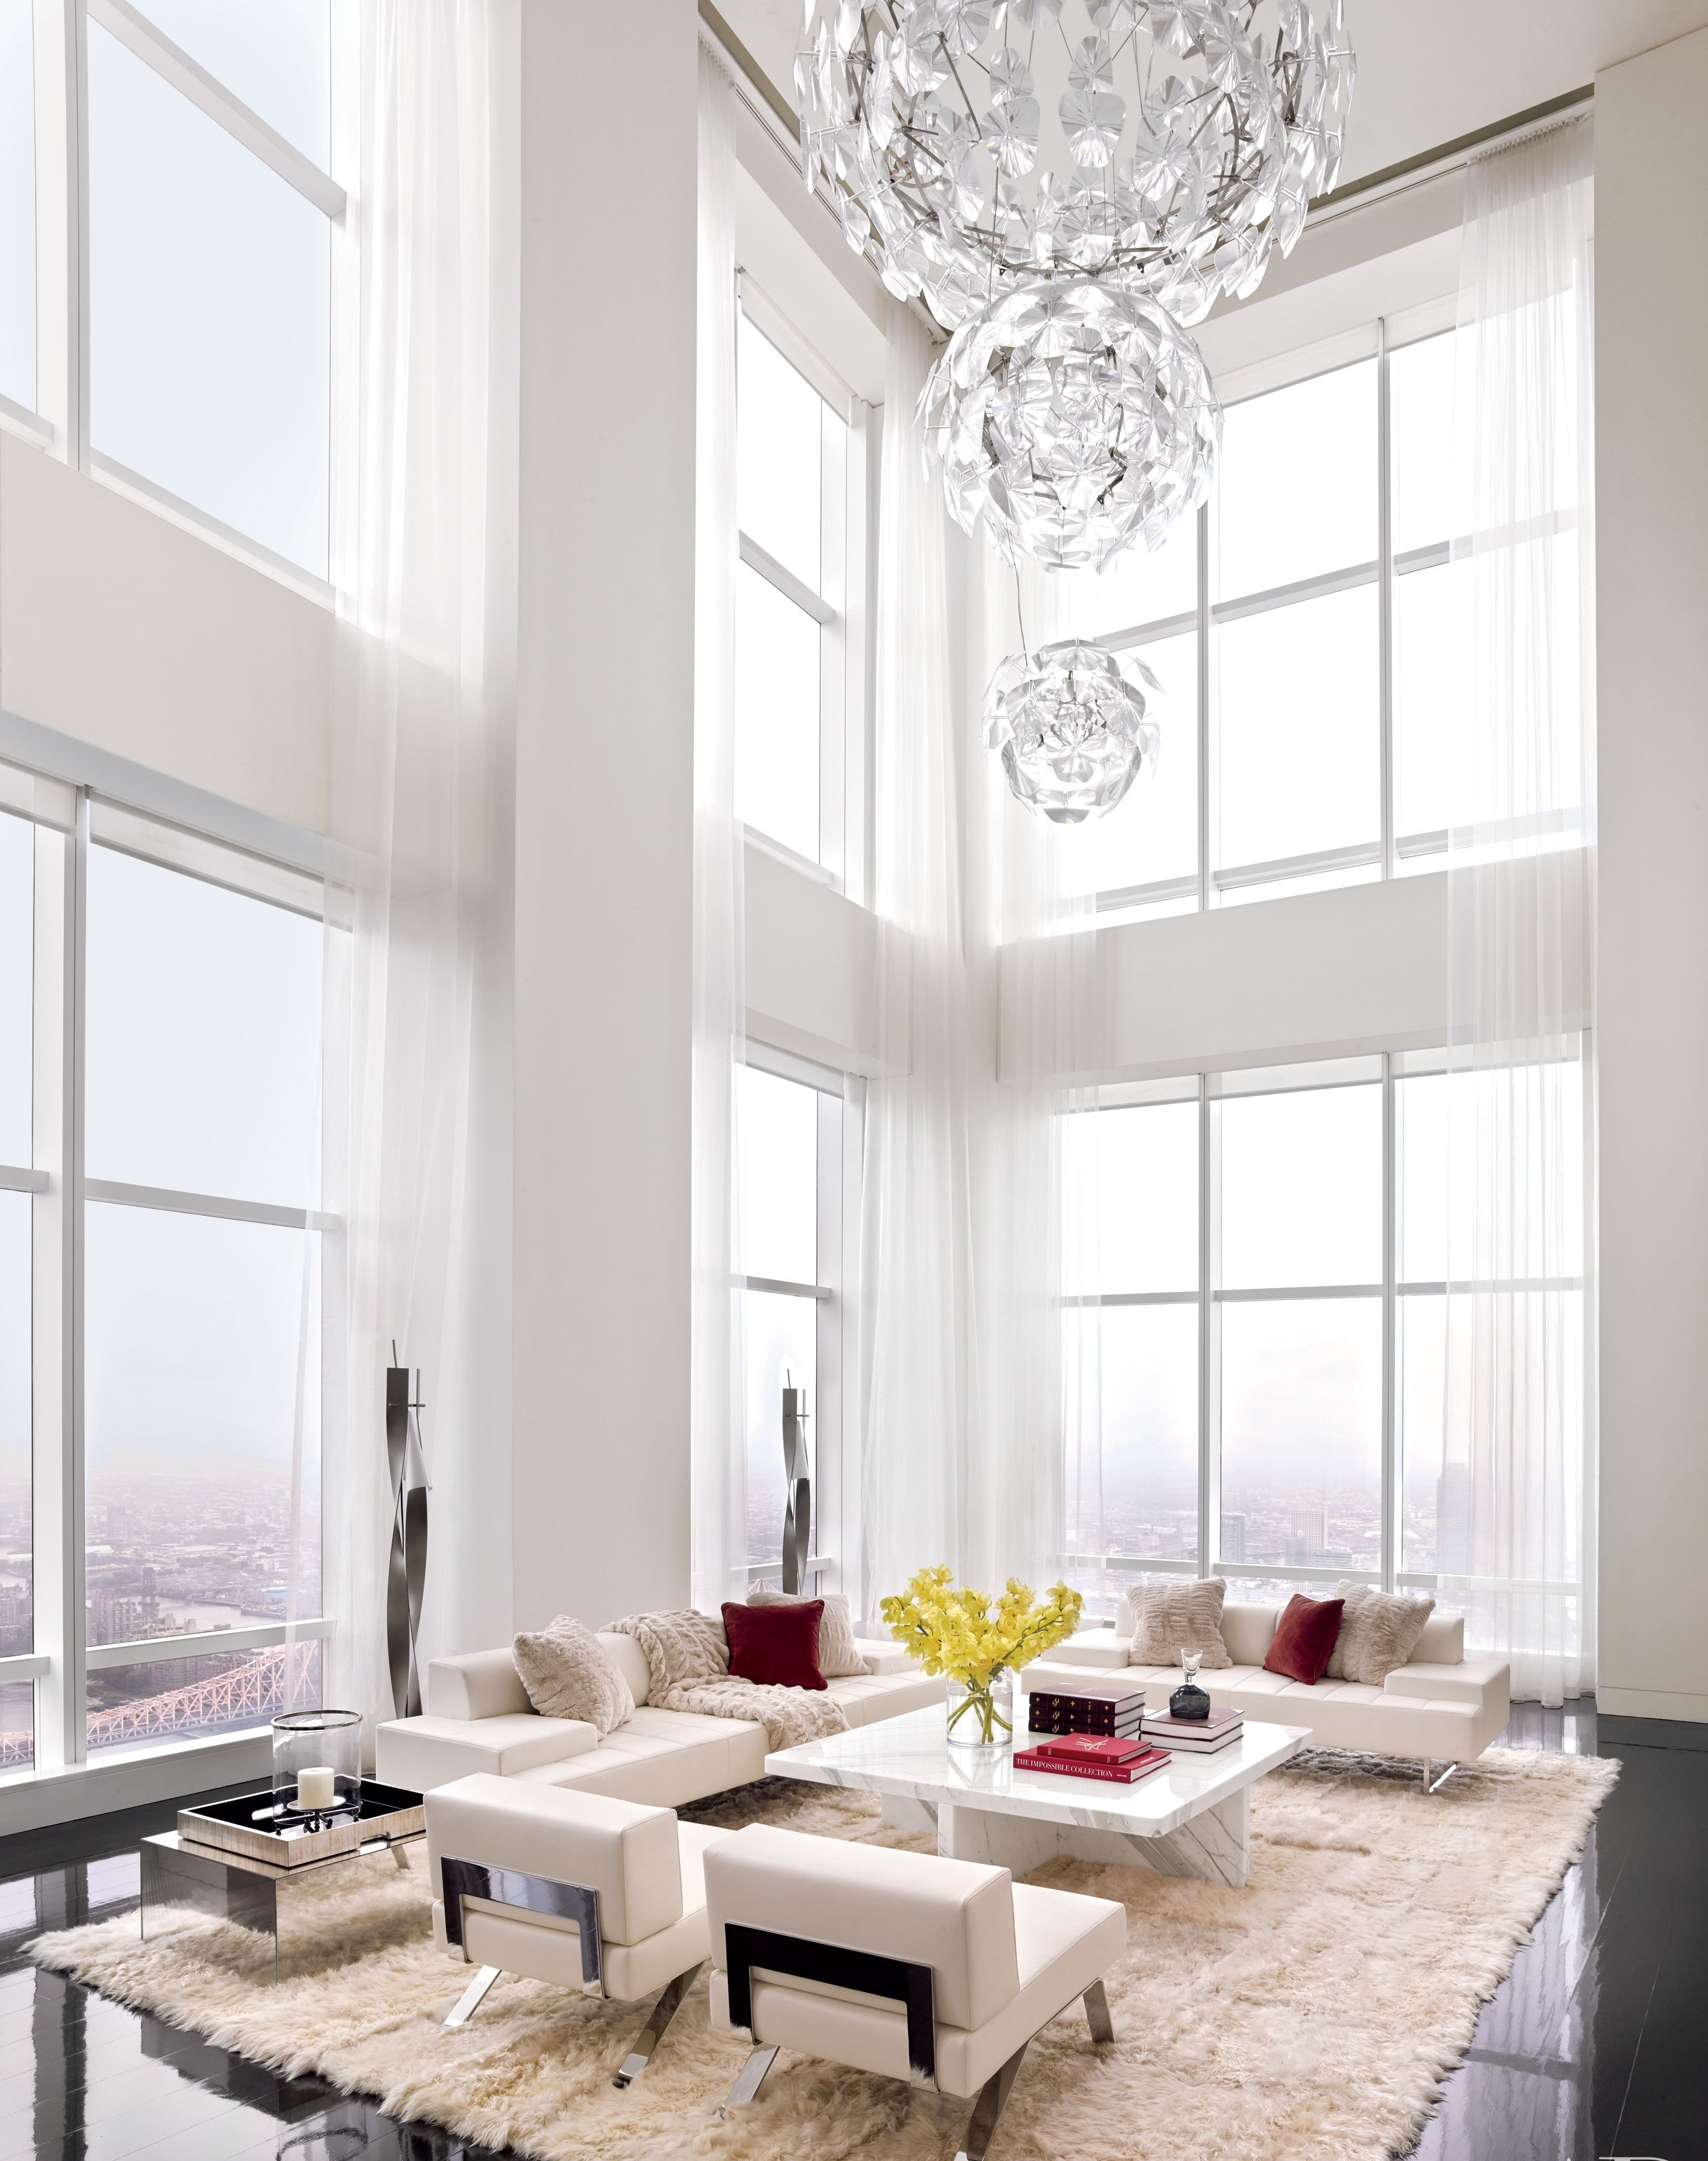 All White Living Room Design Ideas: white living room ideas photos